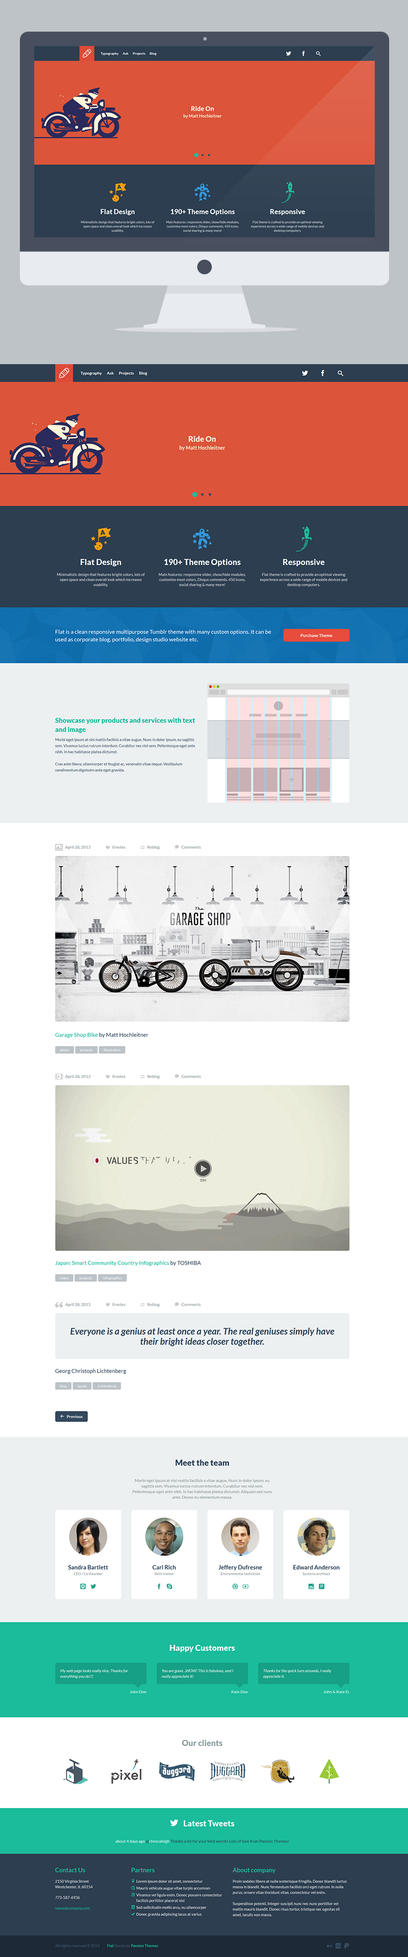 FLAT - Responsive Business Tumblr Theme by PassionThemes